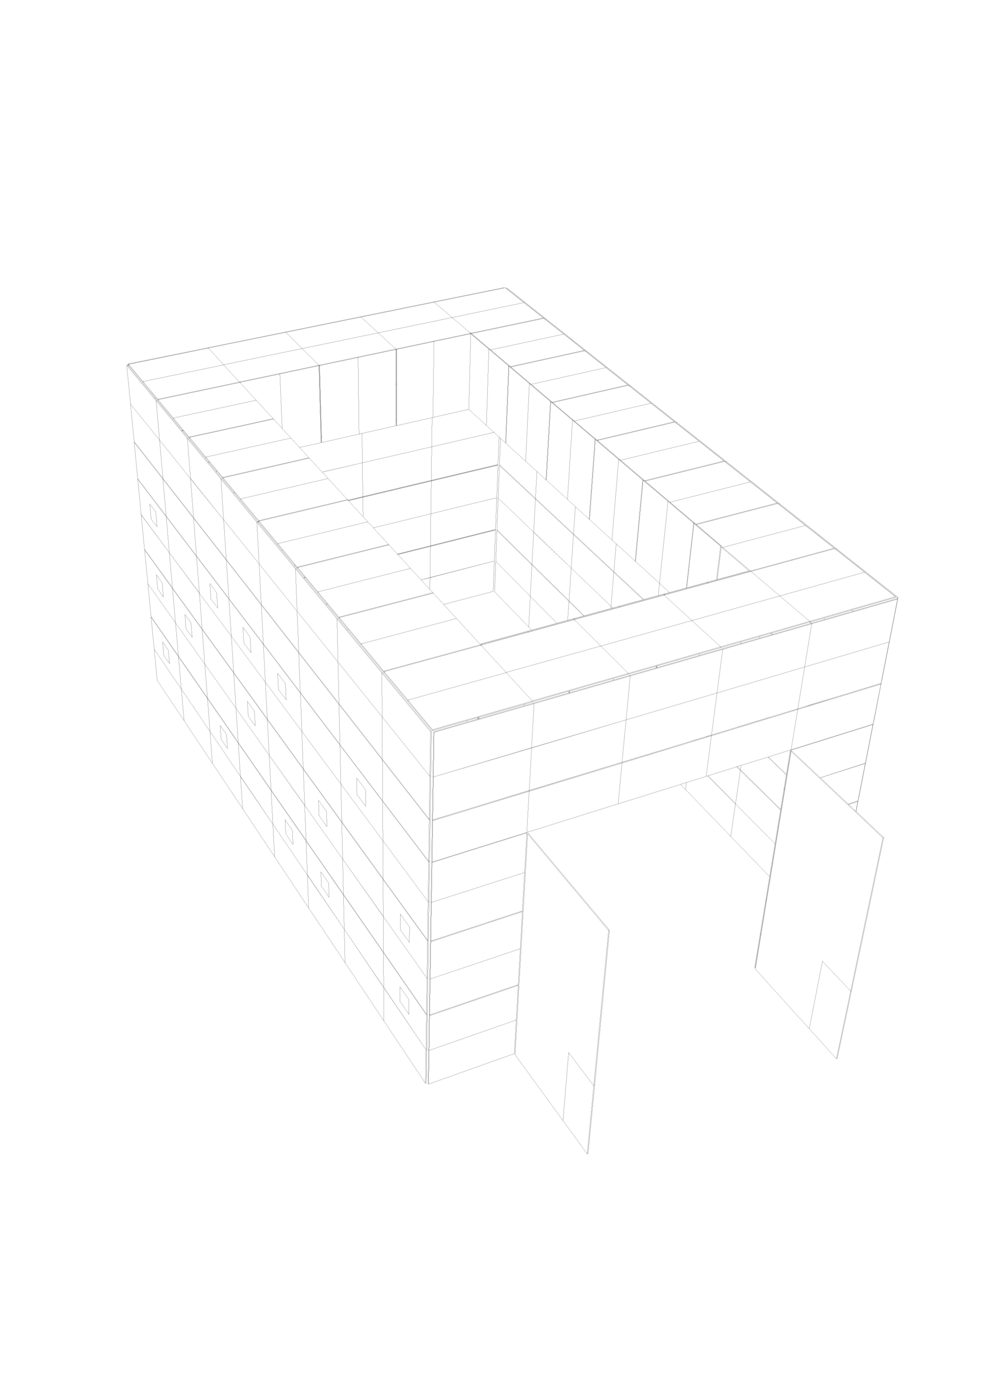 8 CLADDING 3.png